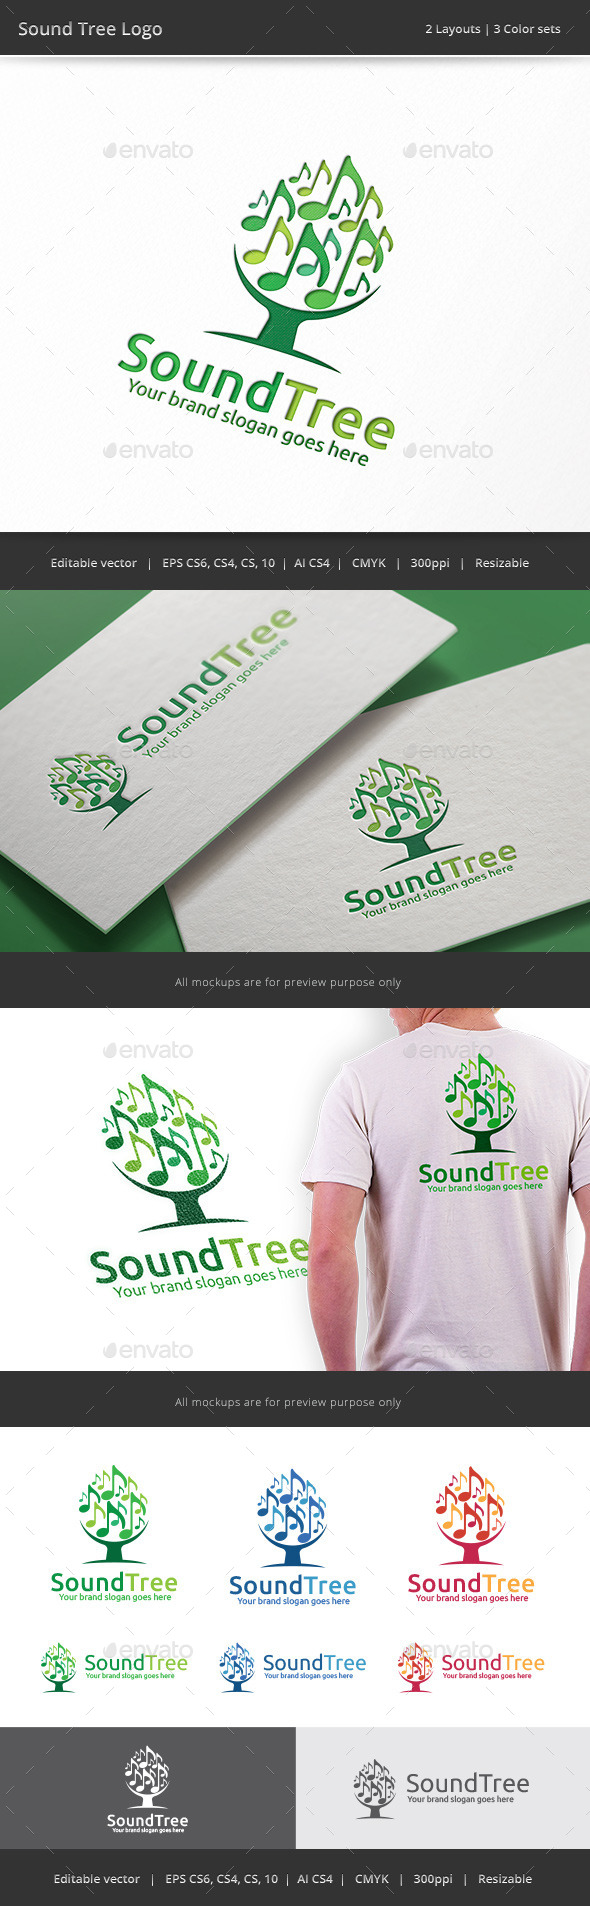 GraphicRiver Sound Tree Logo 8933053